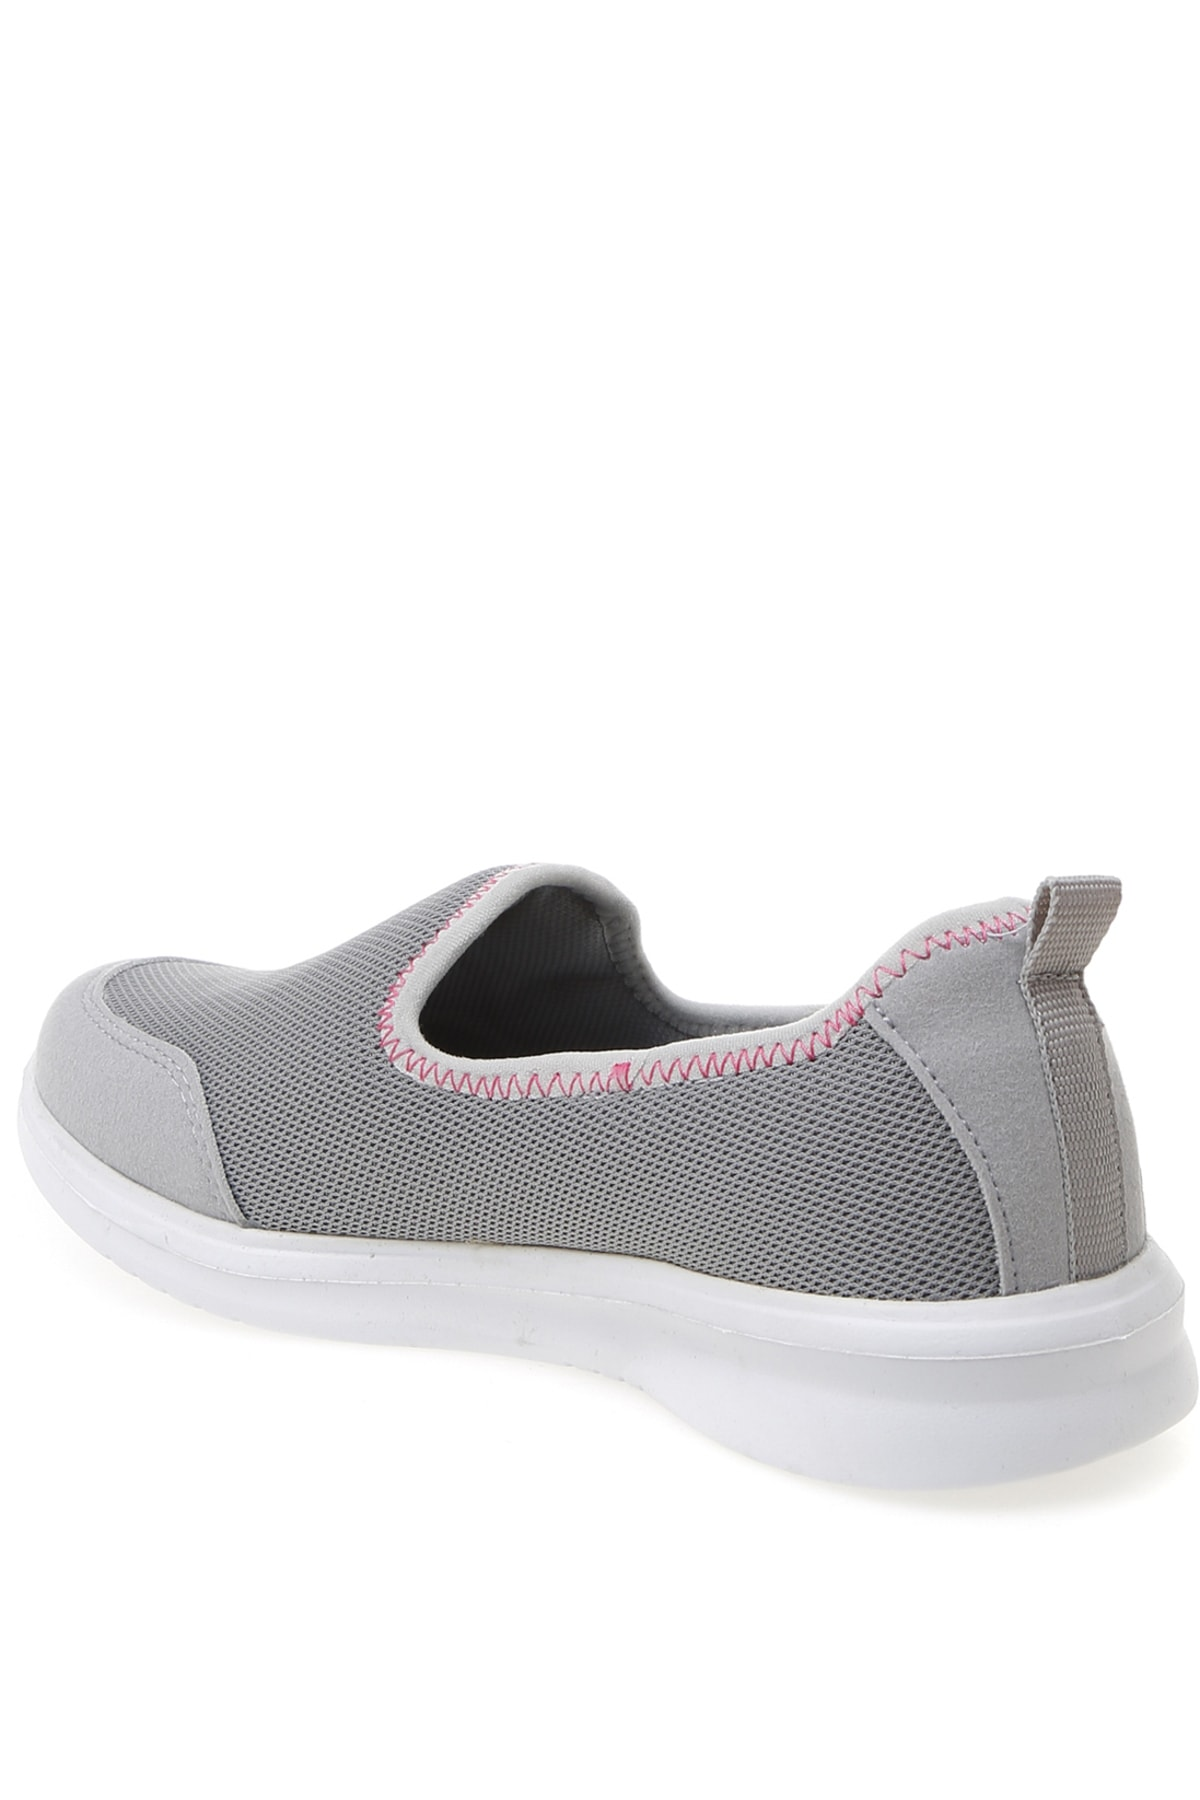 Pierre Cardin Sneakers 2